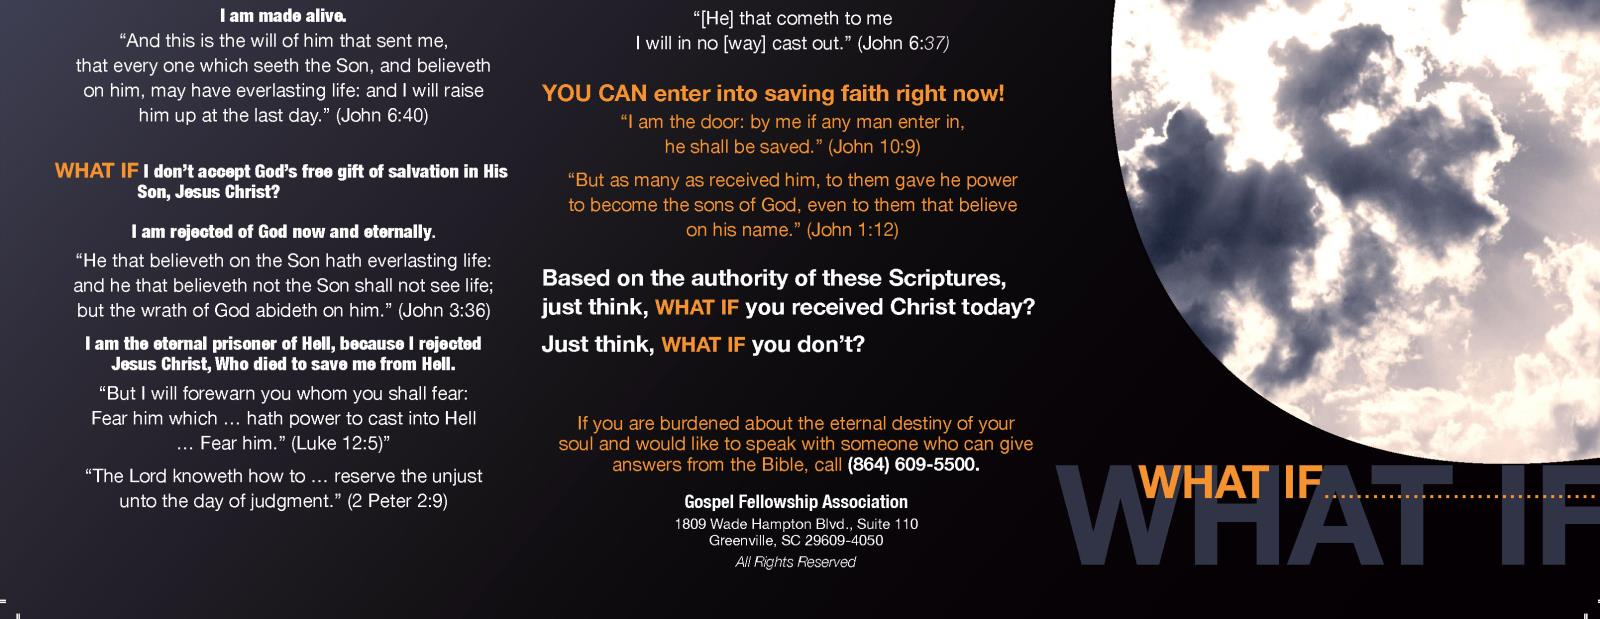 WhatIfTract_Page_2Cropped.jpg